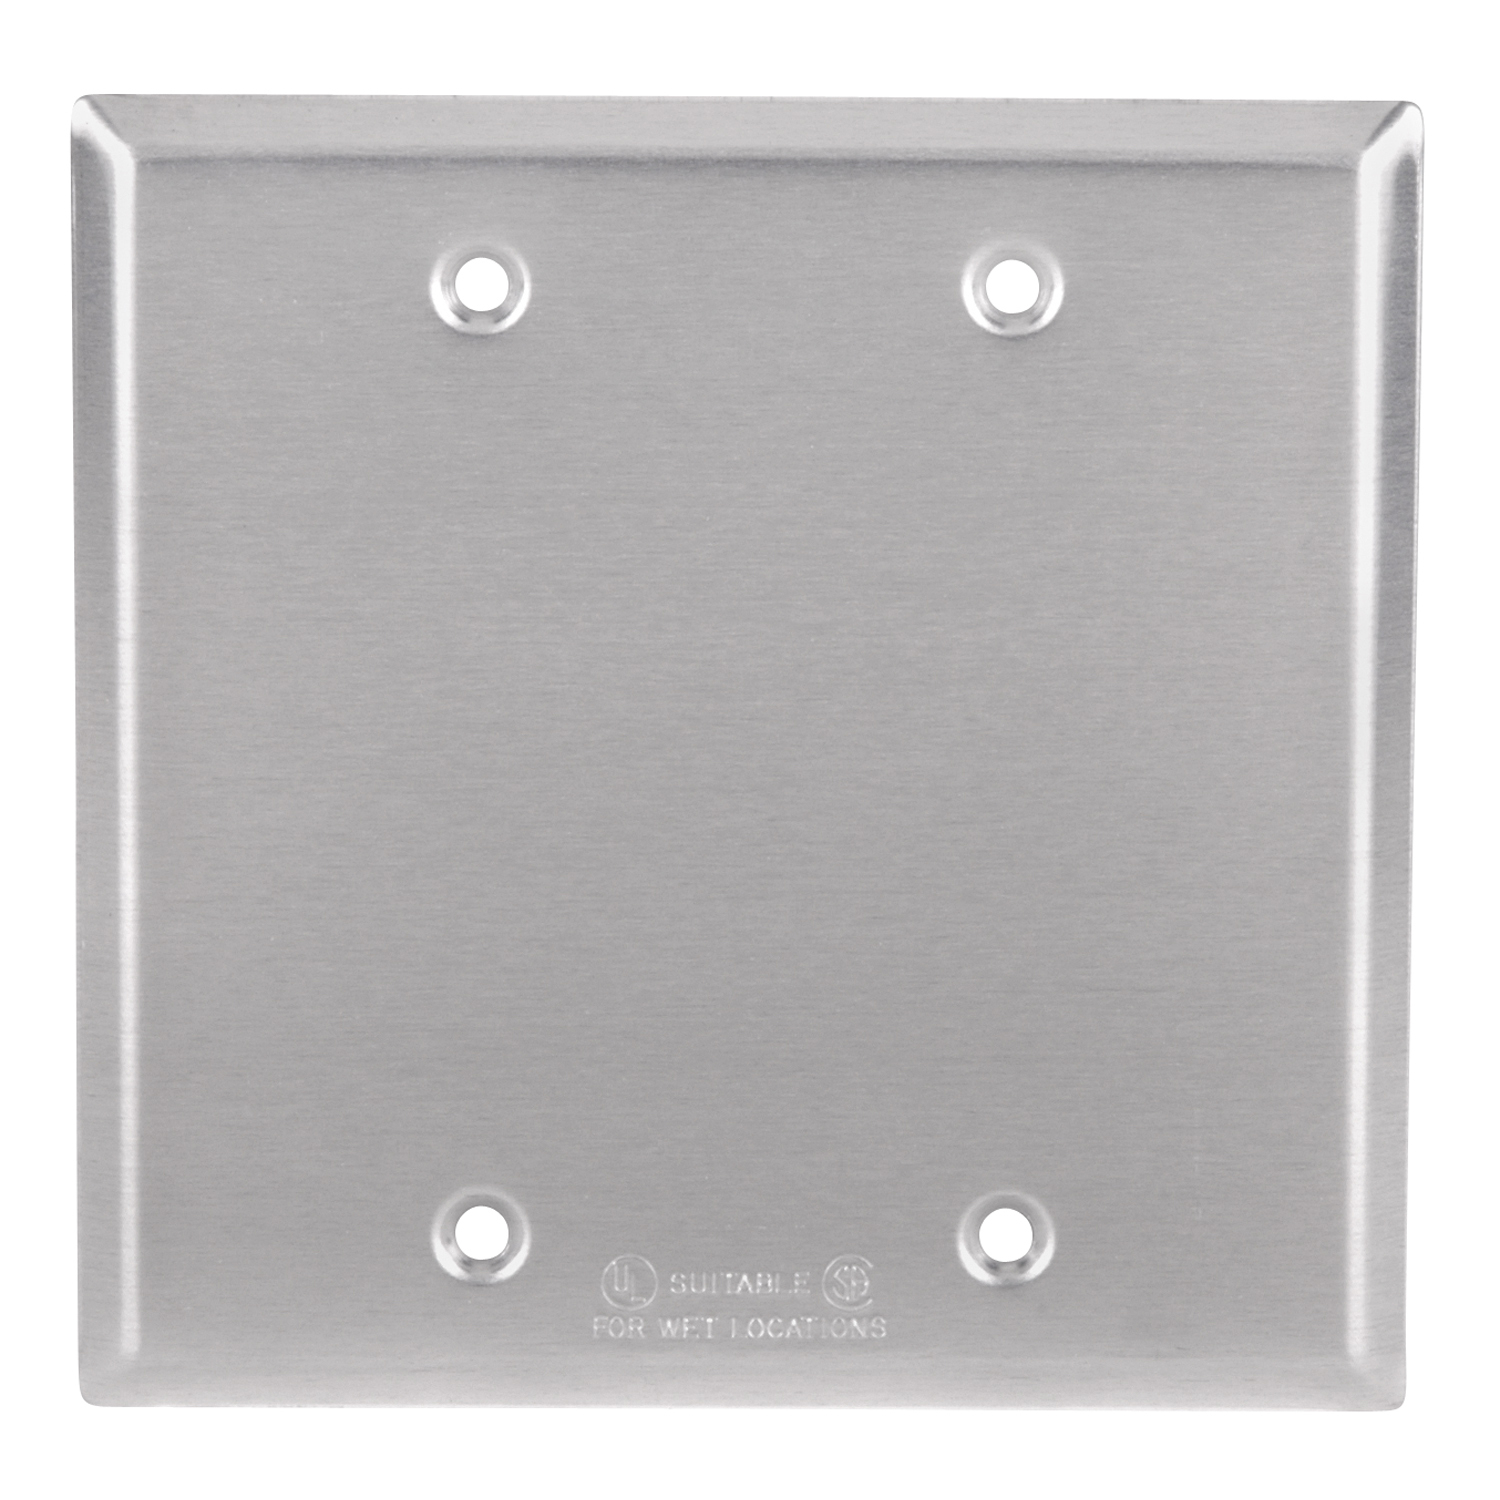 Products Electrical Supplies Boxes & Covers - Electrical Box Covers ...